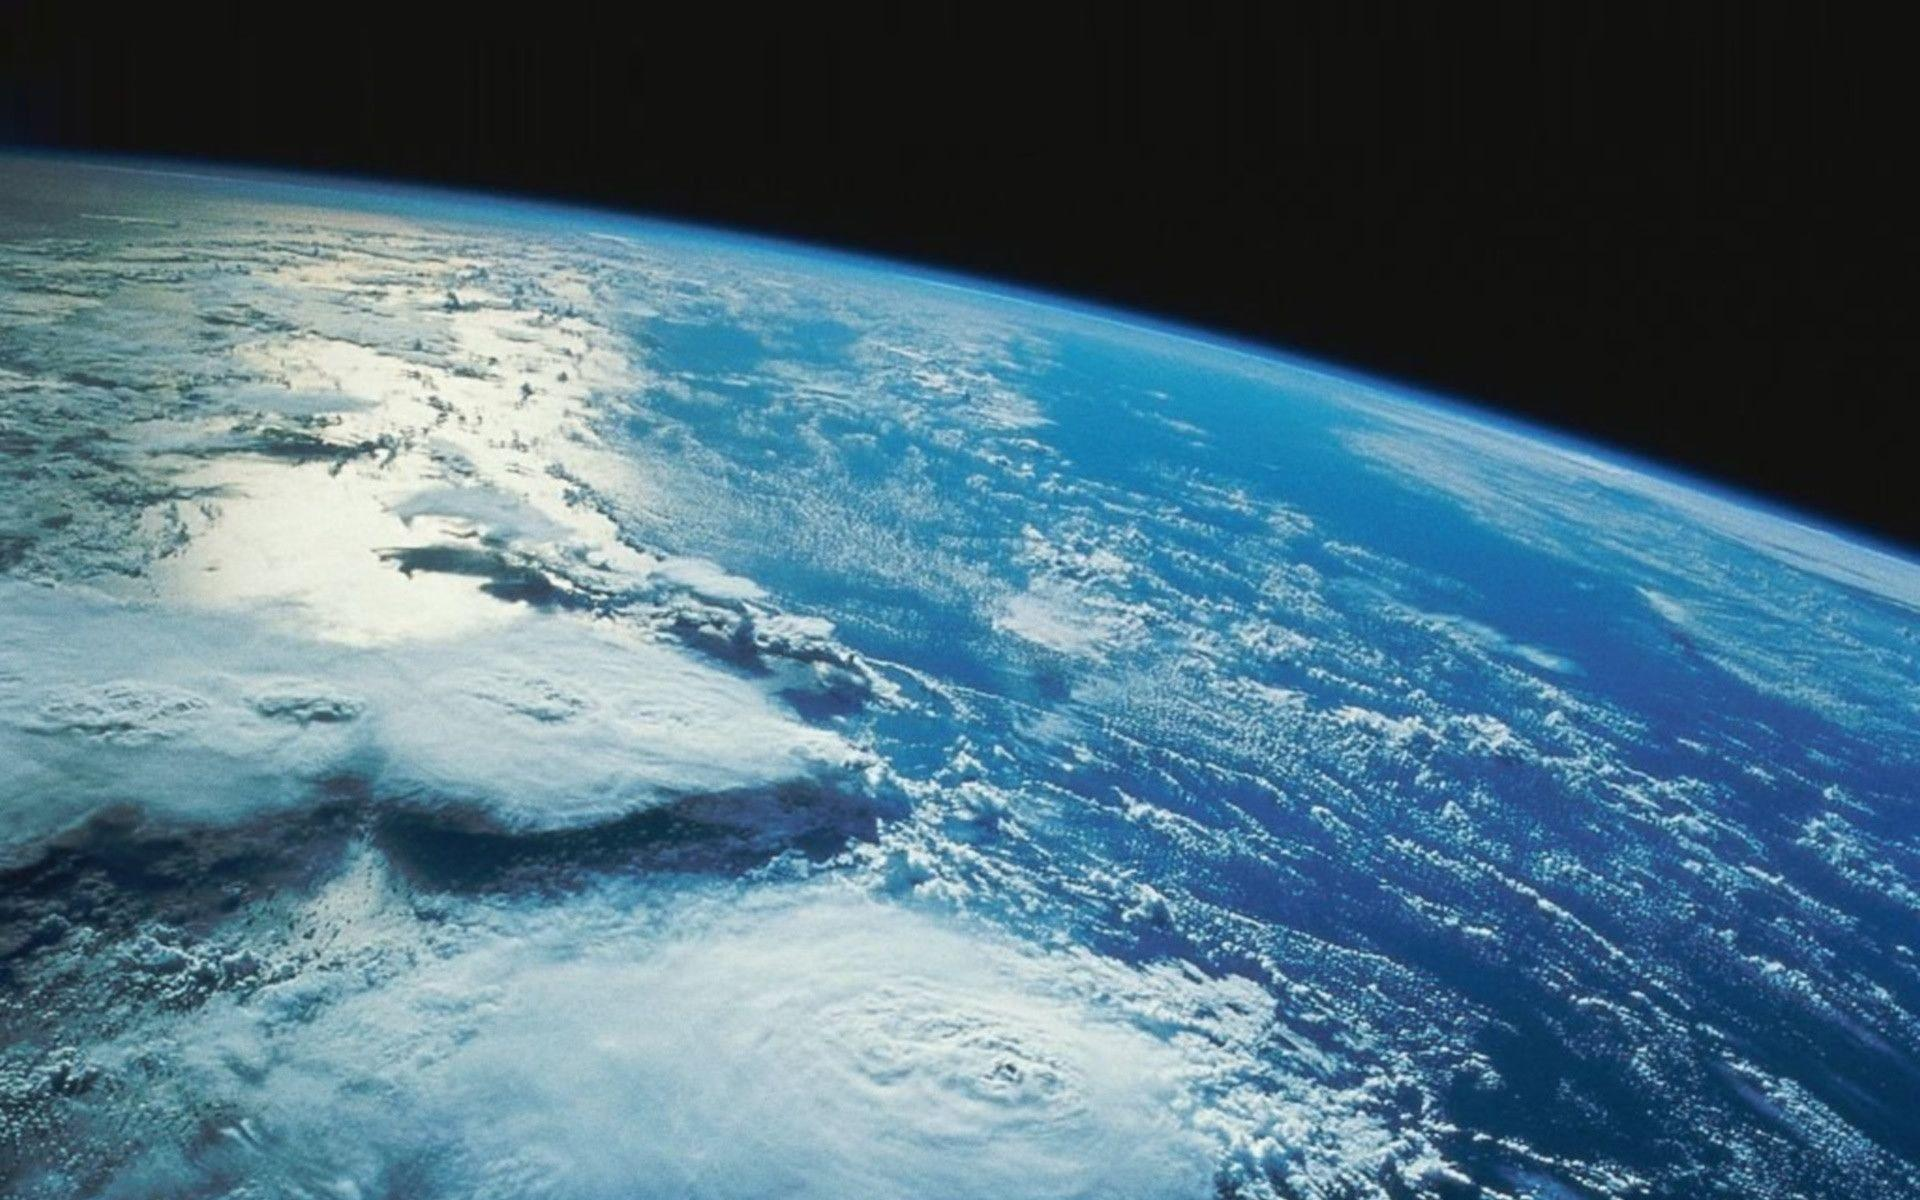 Earth From Space Wallpaper 1920X1200 For Desktop Background 13 HD .